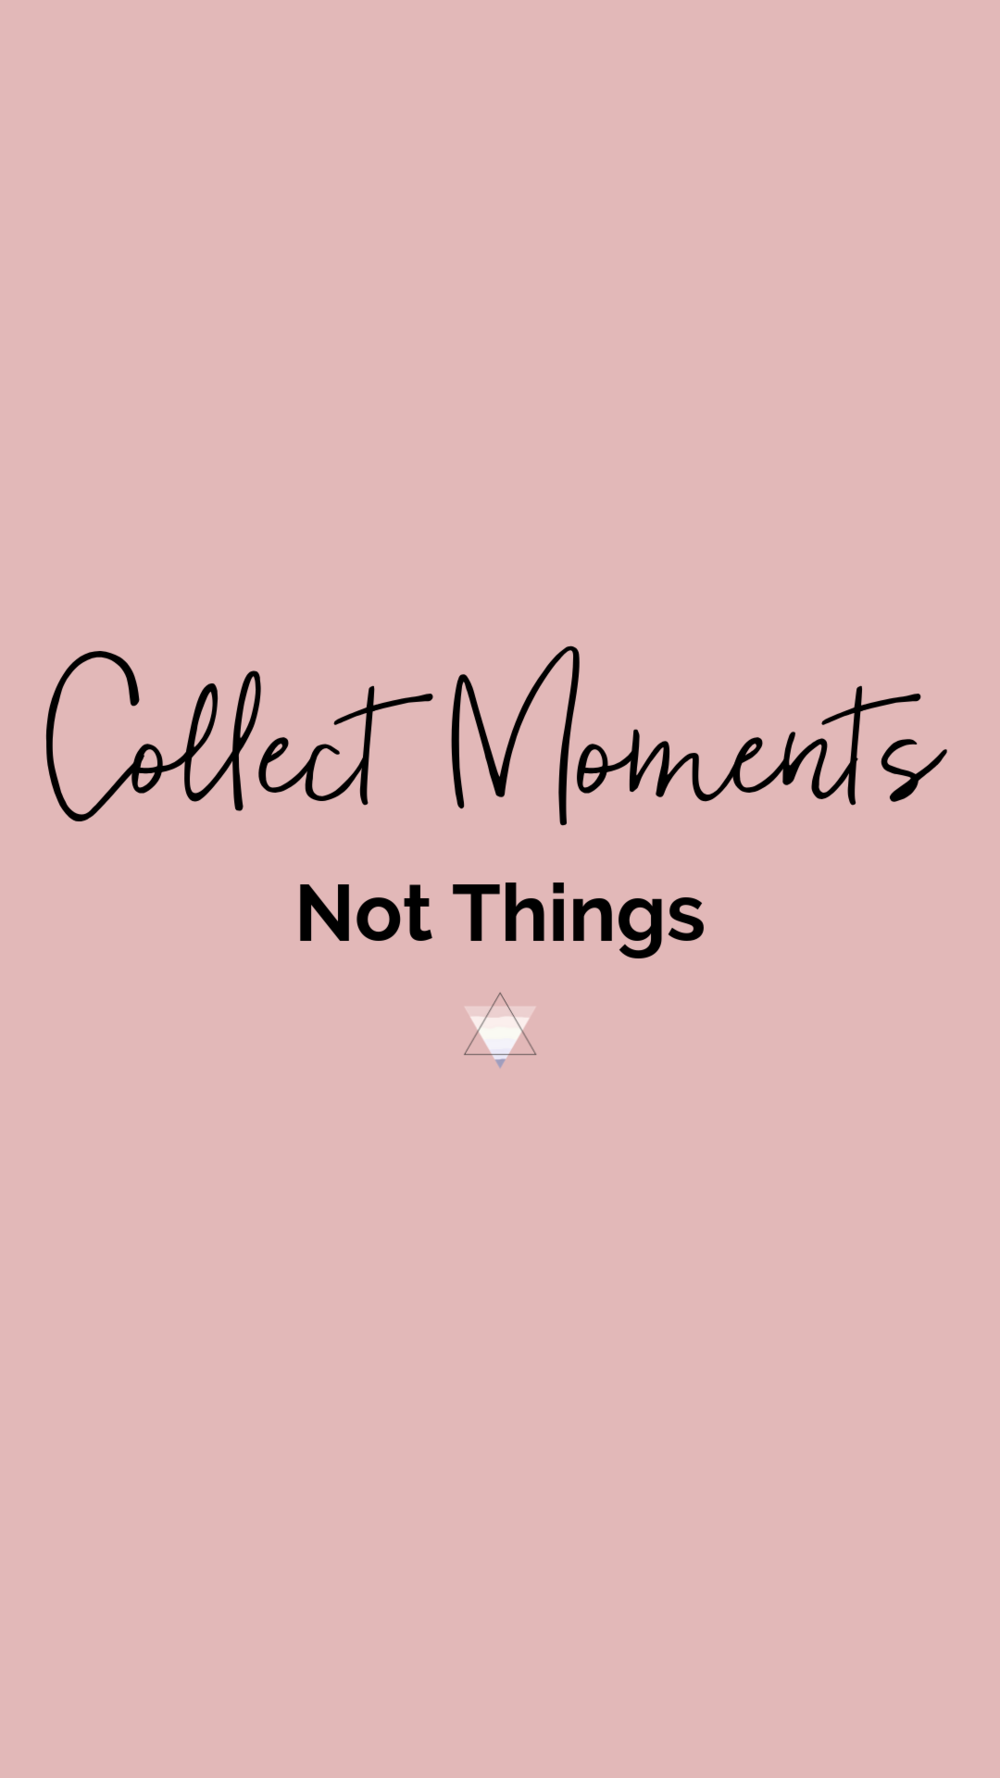 Collect Moments - IG.png